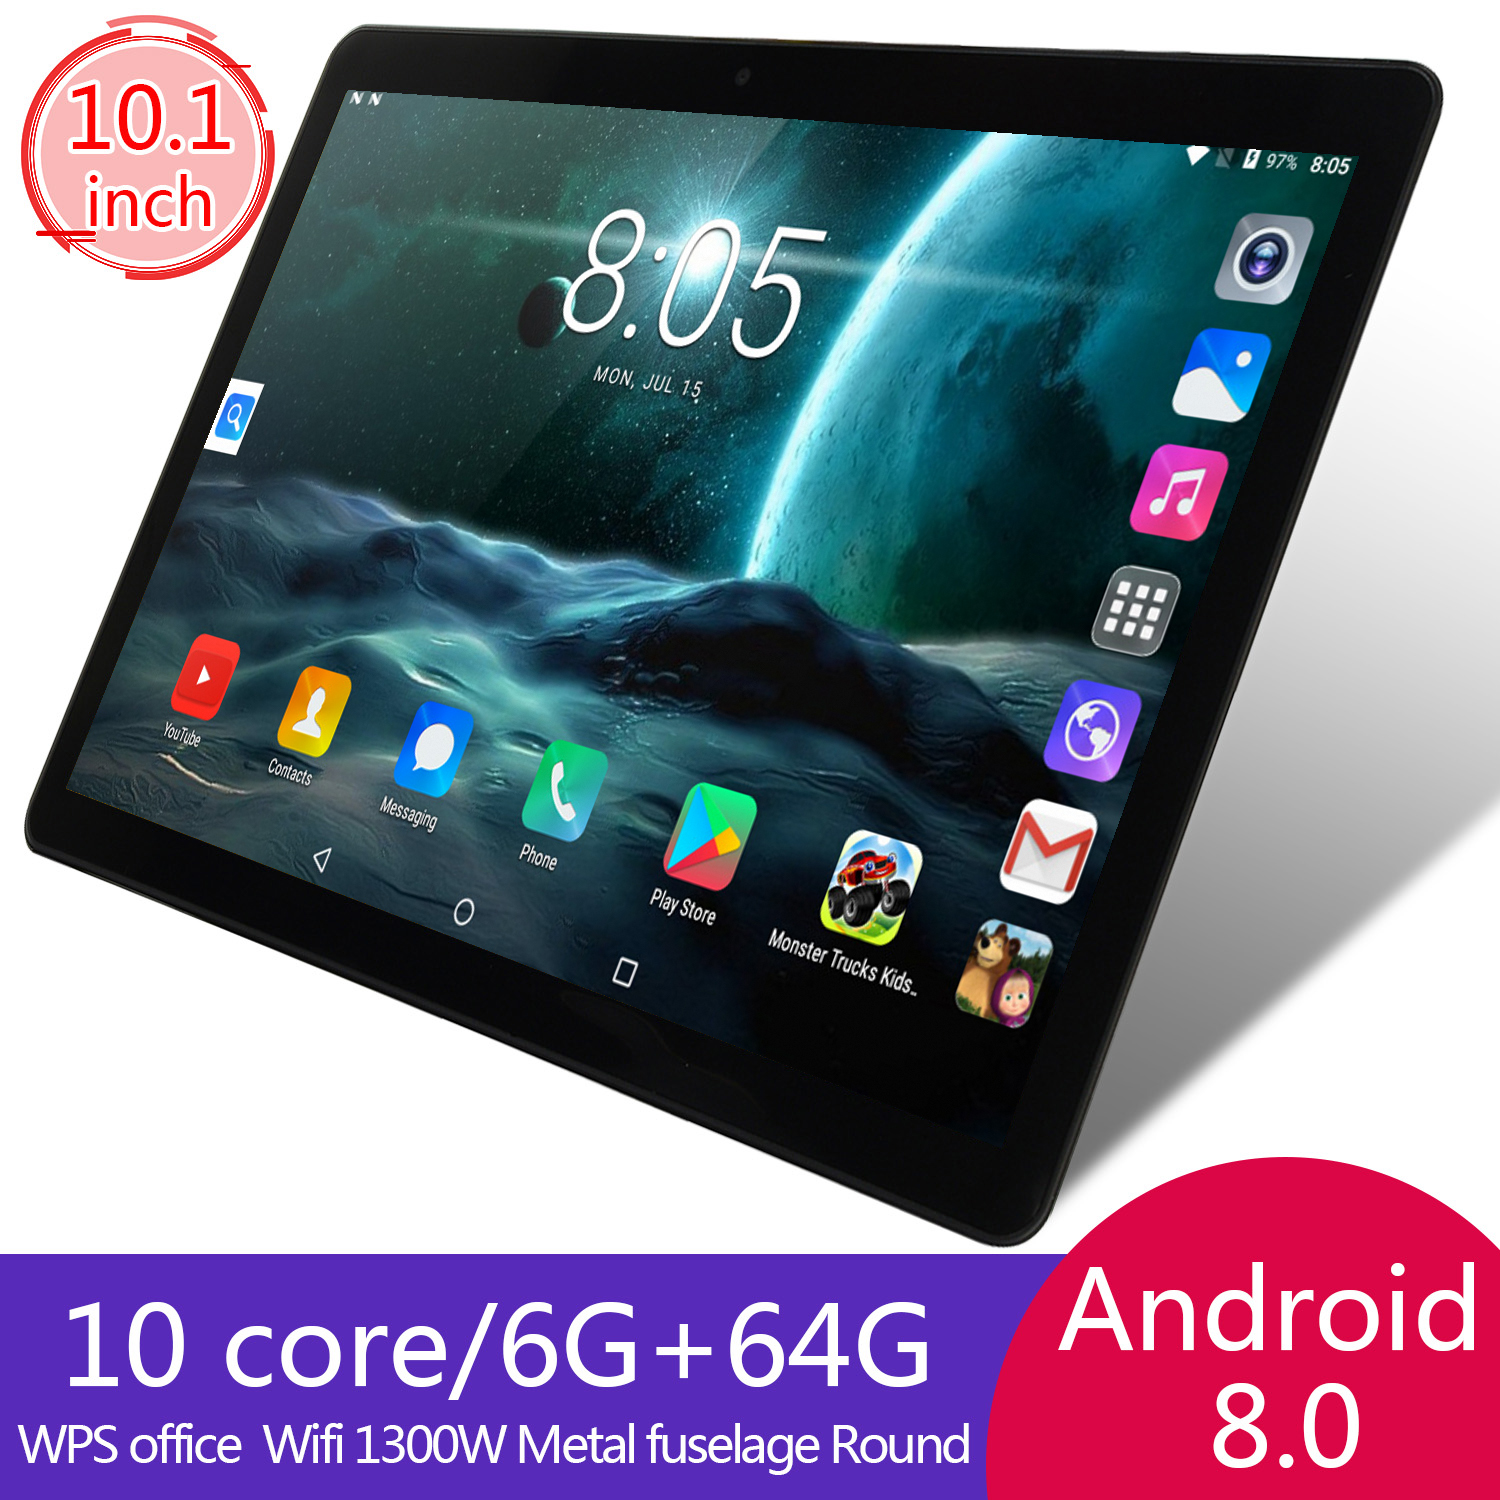 KIVBWY 10 Inch Tablet PC 6GB RAM 64GB ROM 1280*800 IPSl SIM Card 4G LTE FDD Wifi Android 8.0 Tablet 10.1